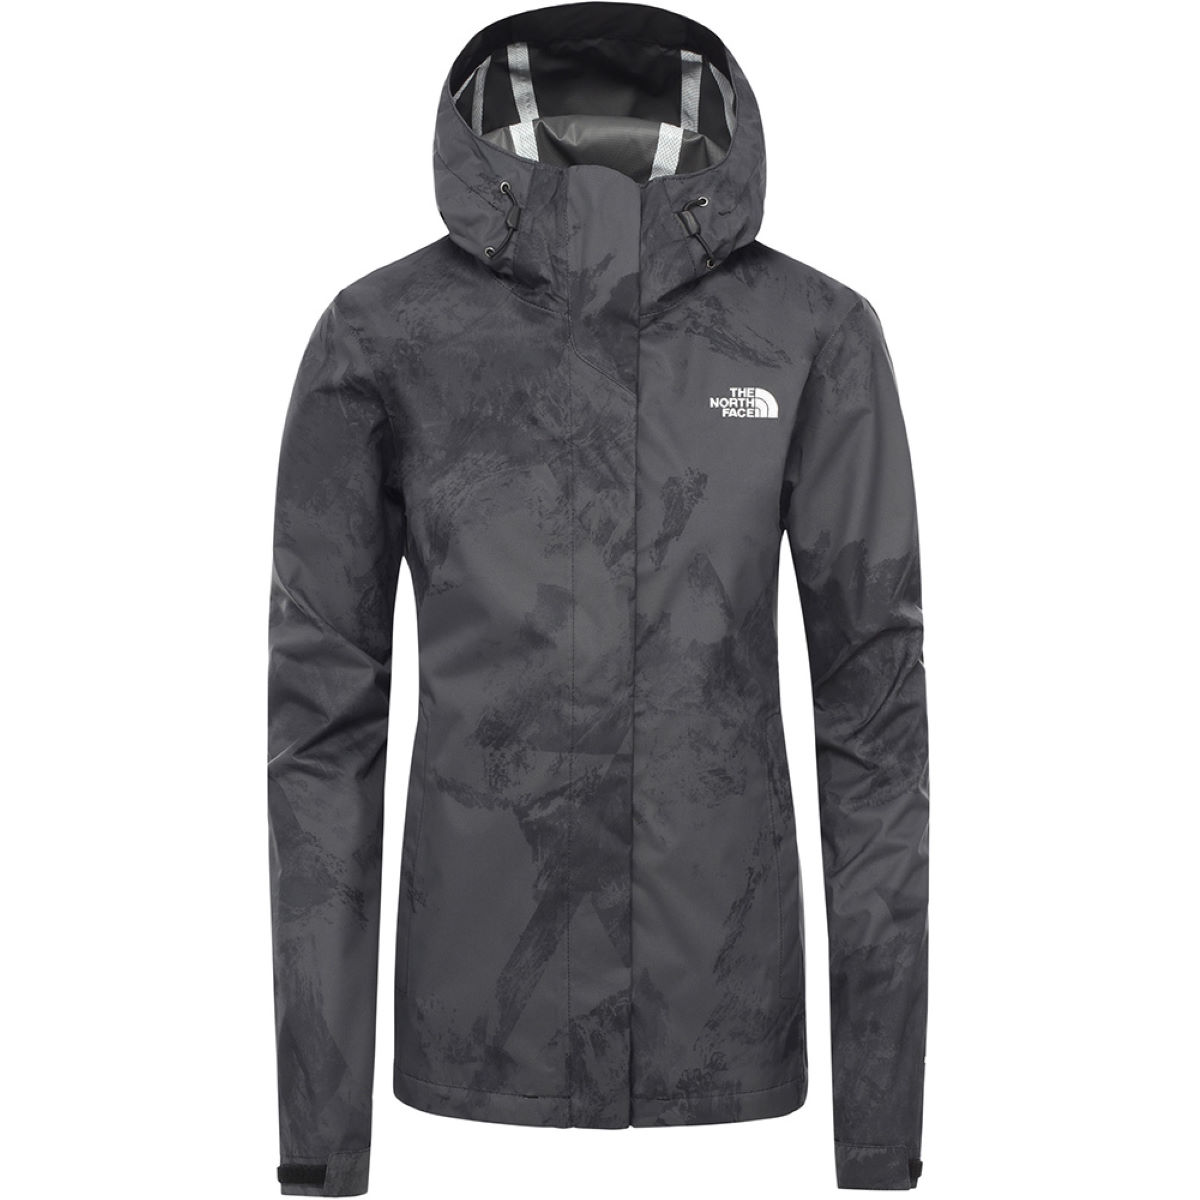 The North Face The North Face Women's Venture 2 Jacket   Jackets